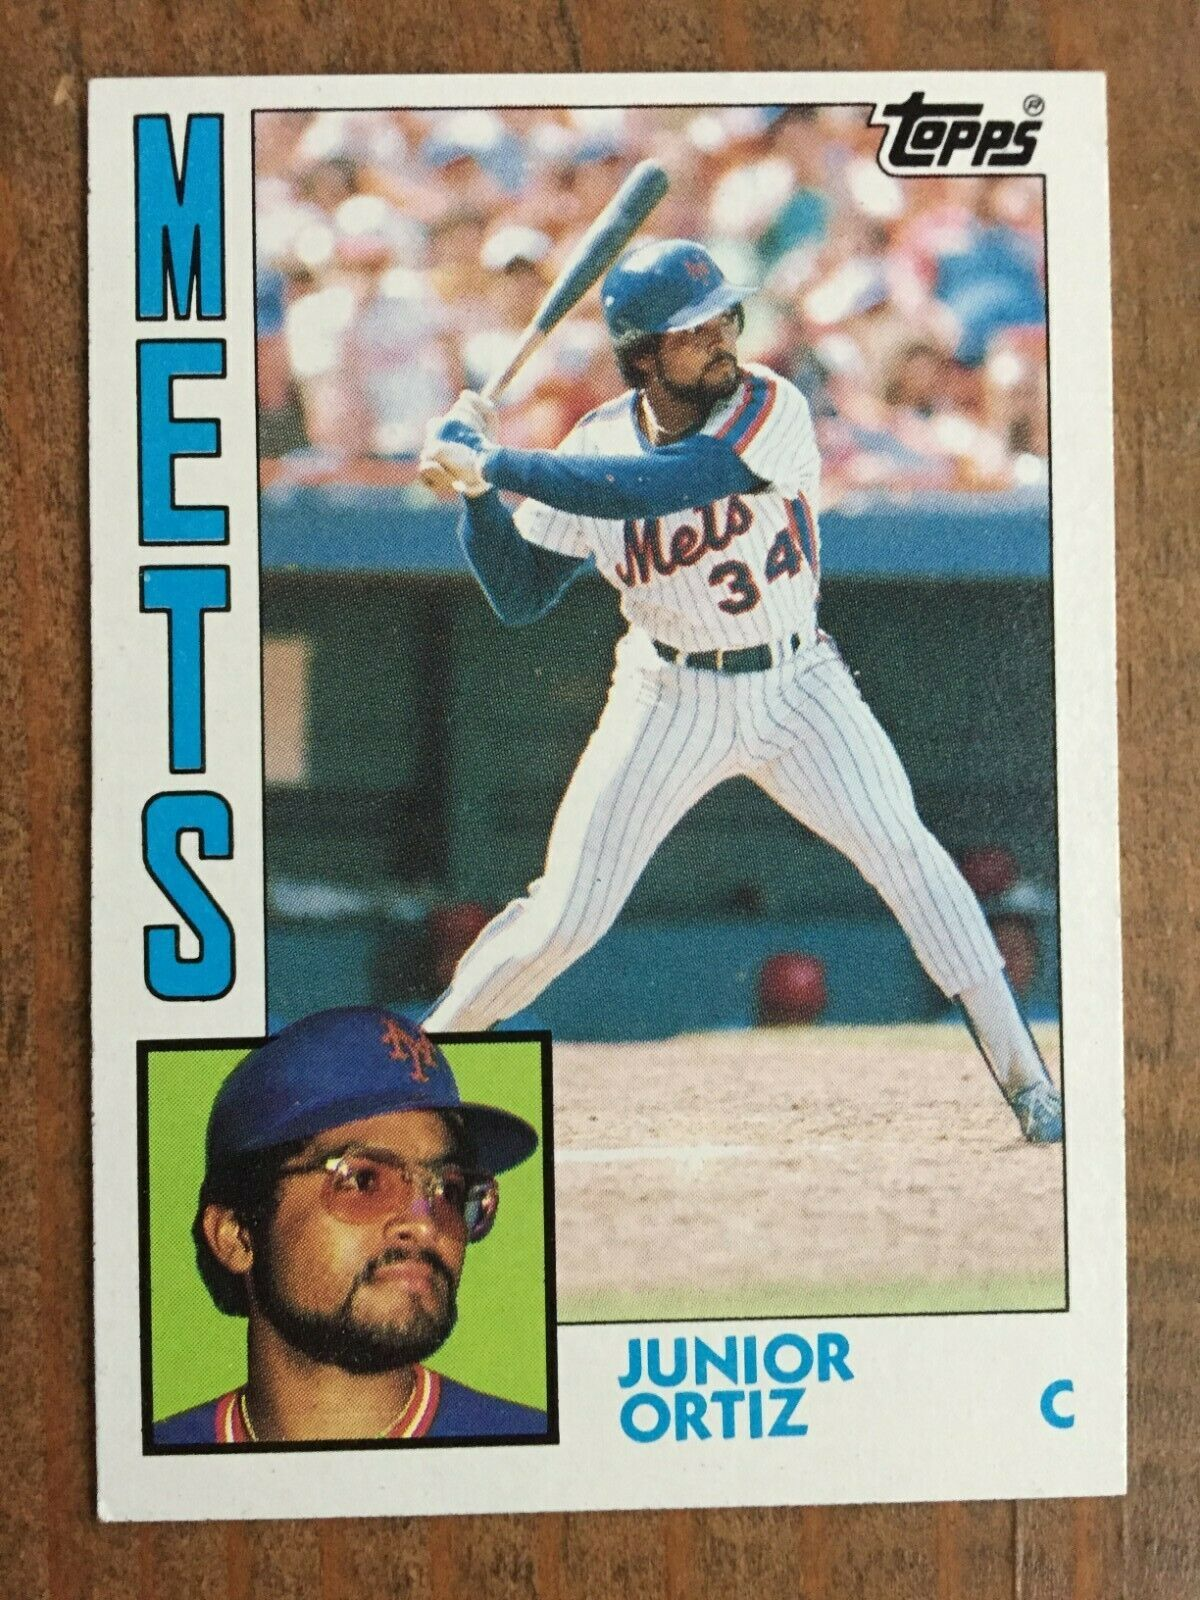 My Ebay Selling Overview In 2020 New York Mets New York Mets Baseball Cards